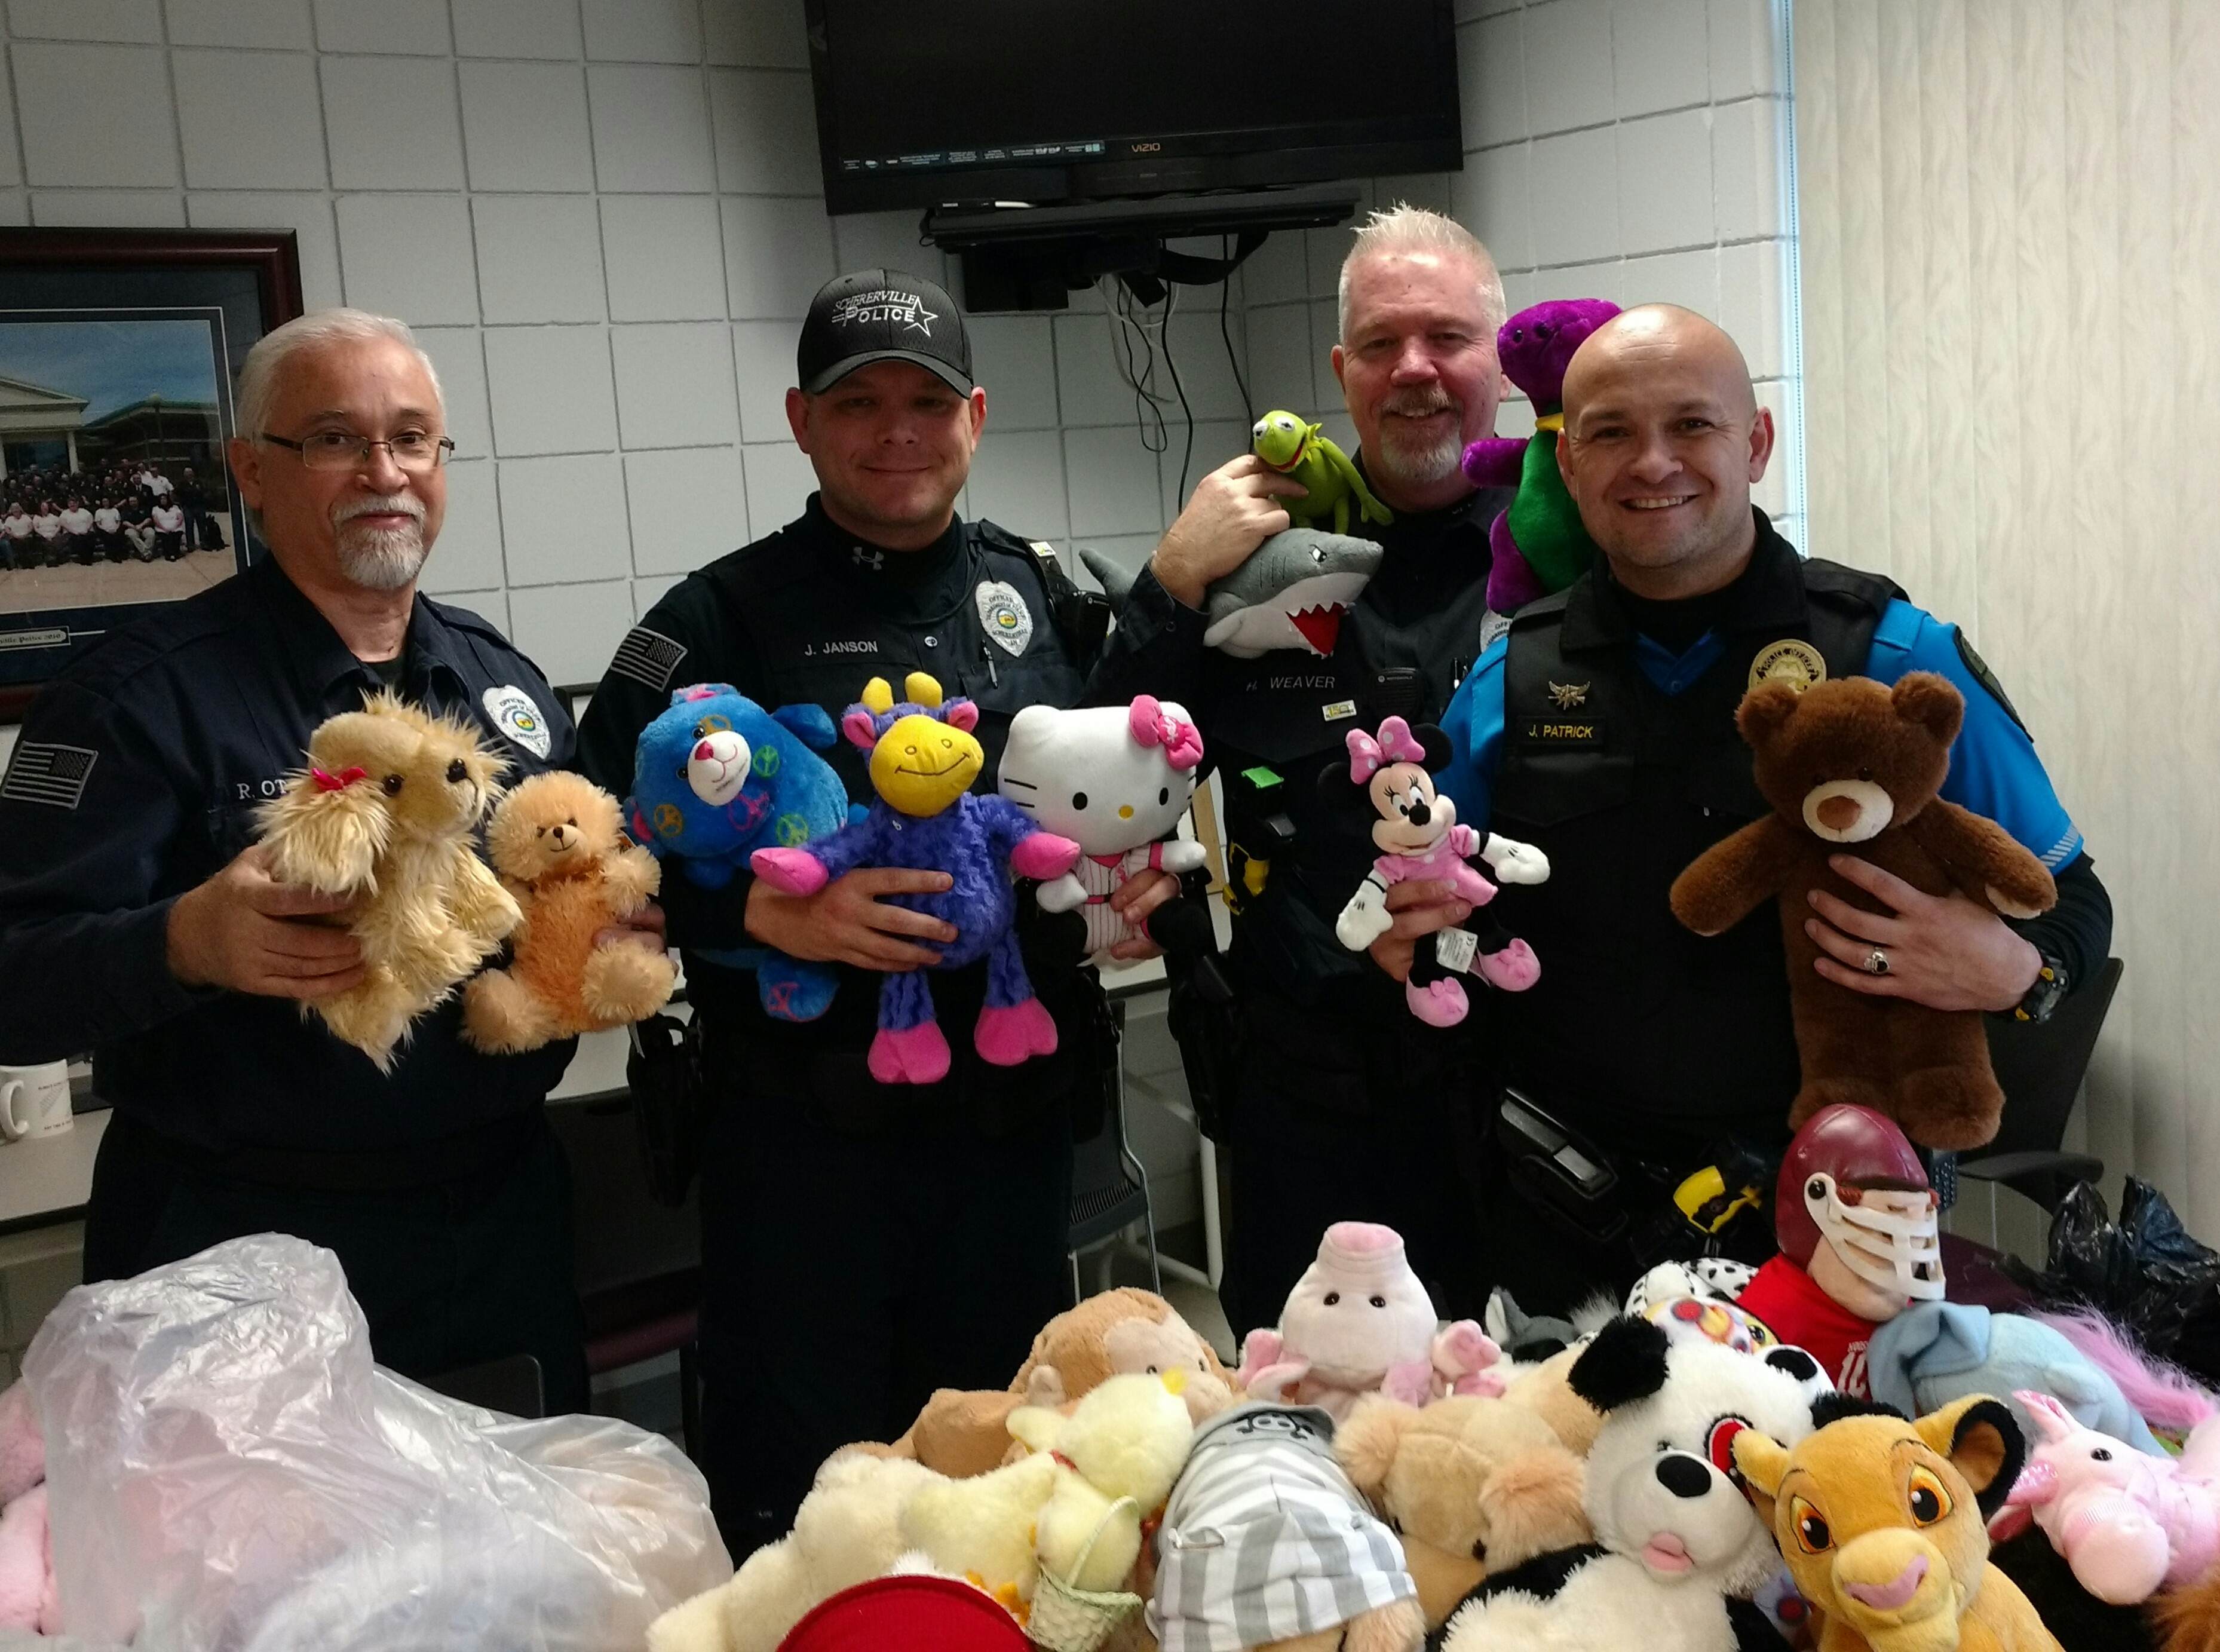 Officers & Teddy Bears